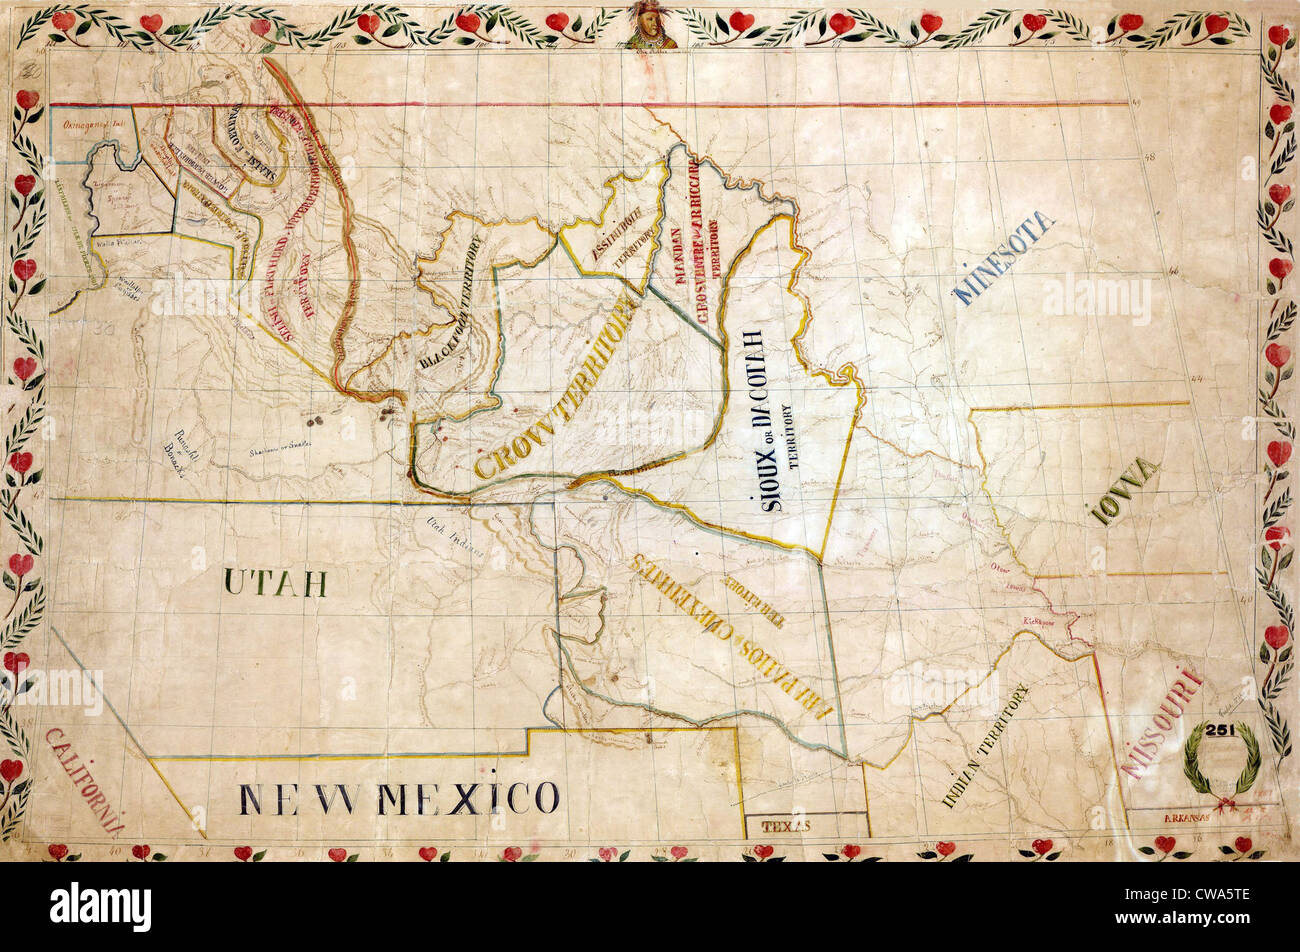 Great Plains Map Stock Photos & Great Plains Map Stock Images - Alamy